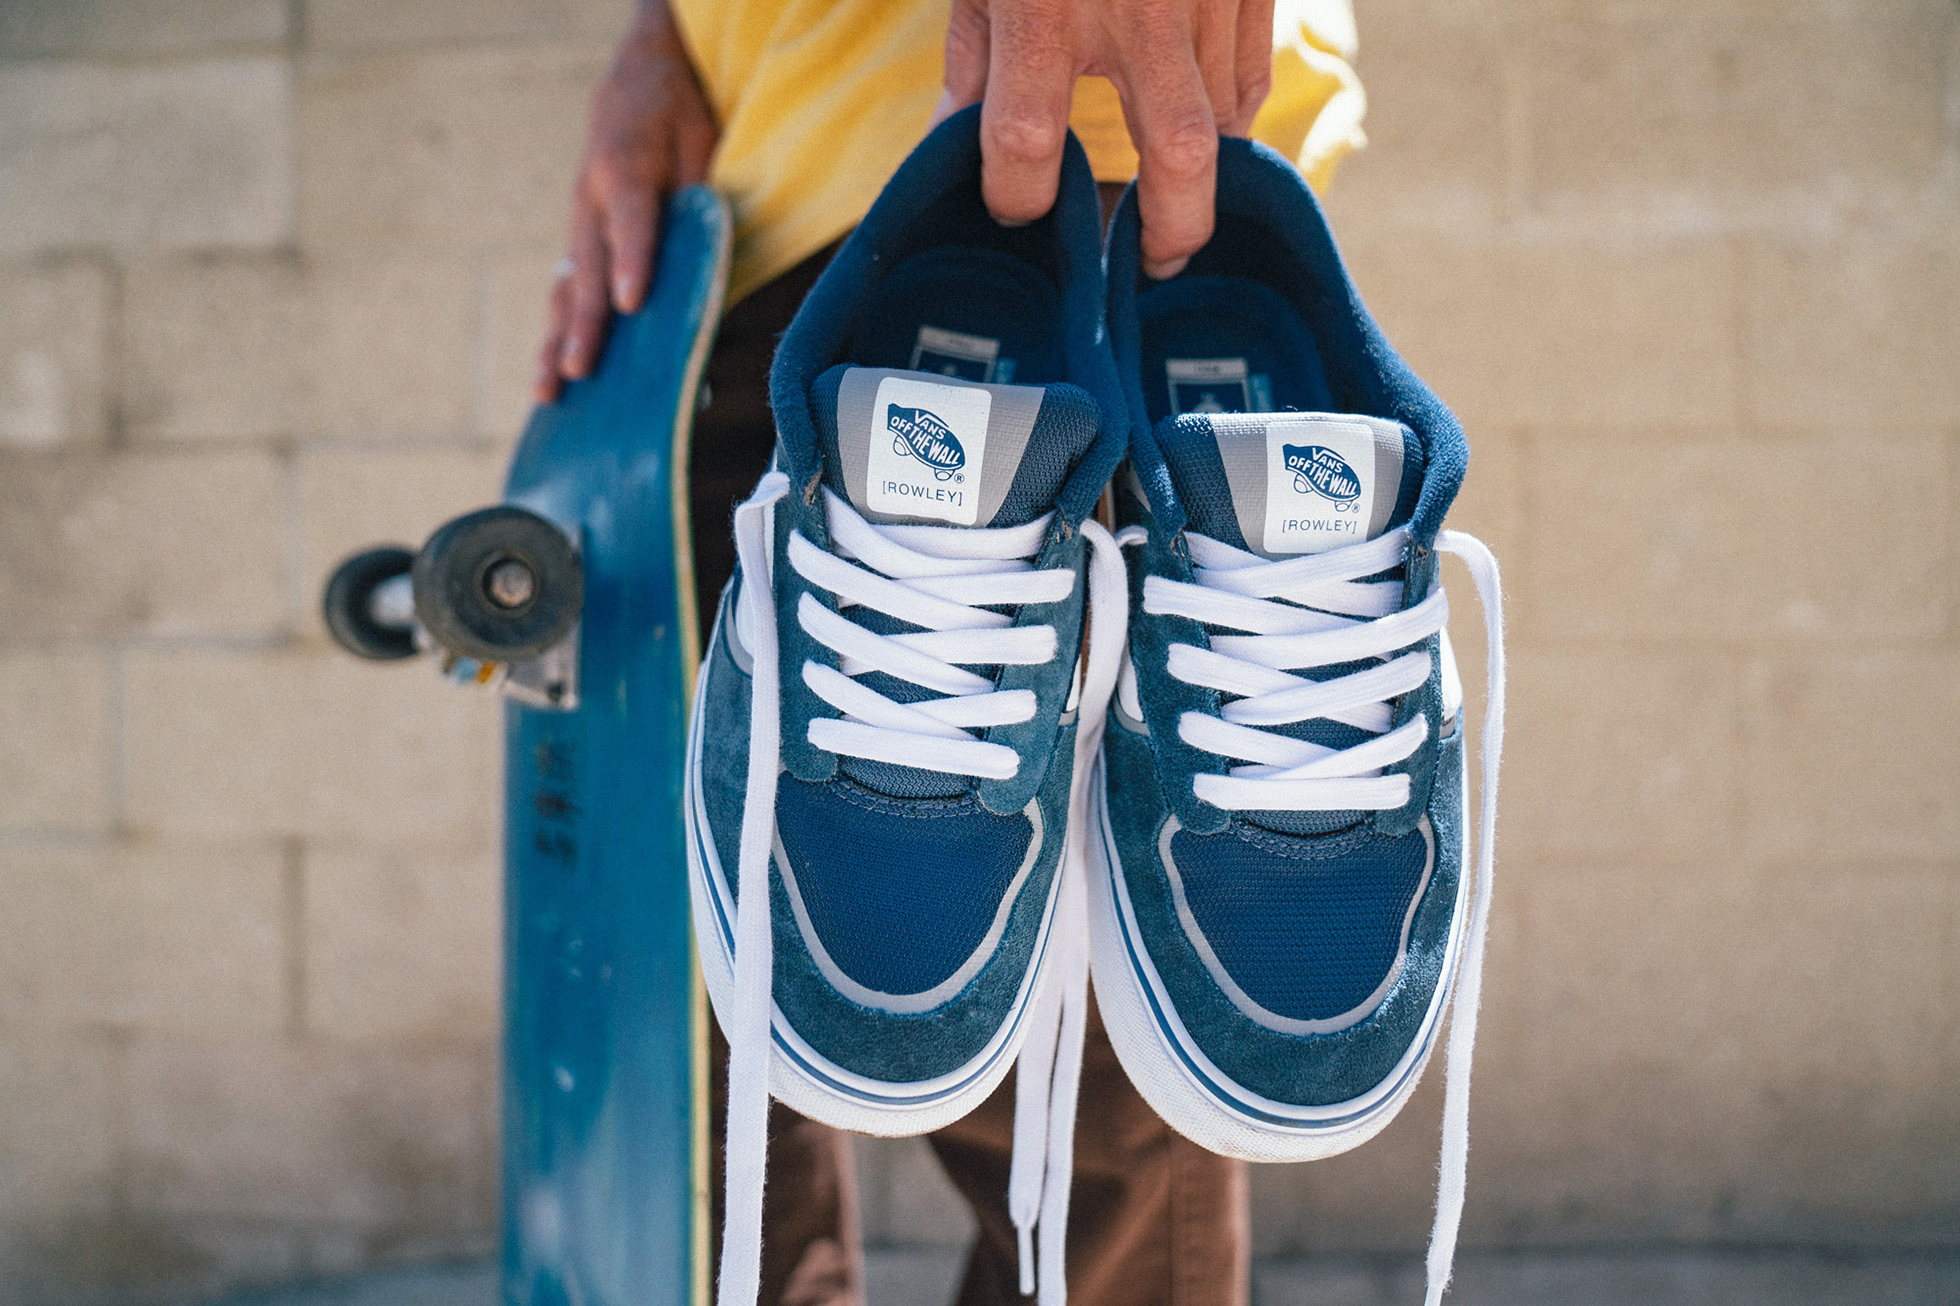 Built for Abuse: Vans Rowley RapidWeld Pro